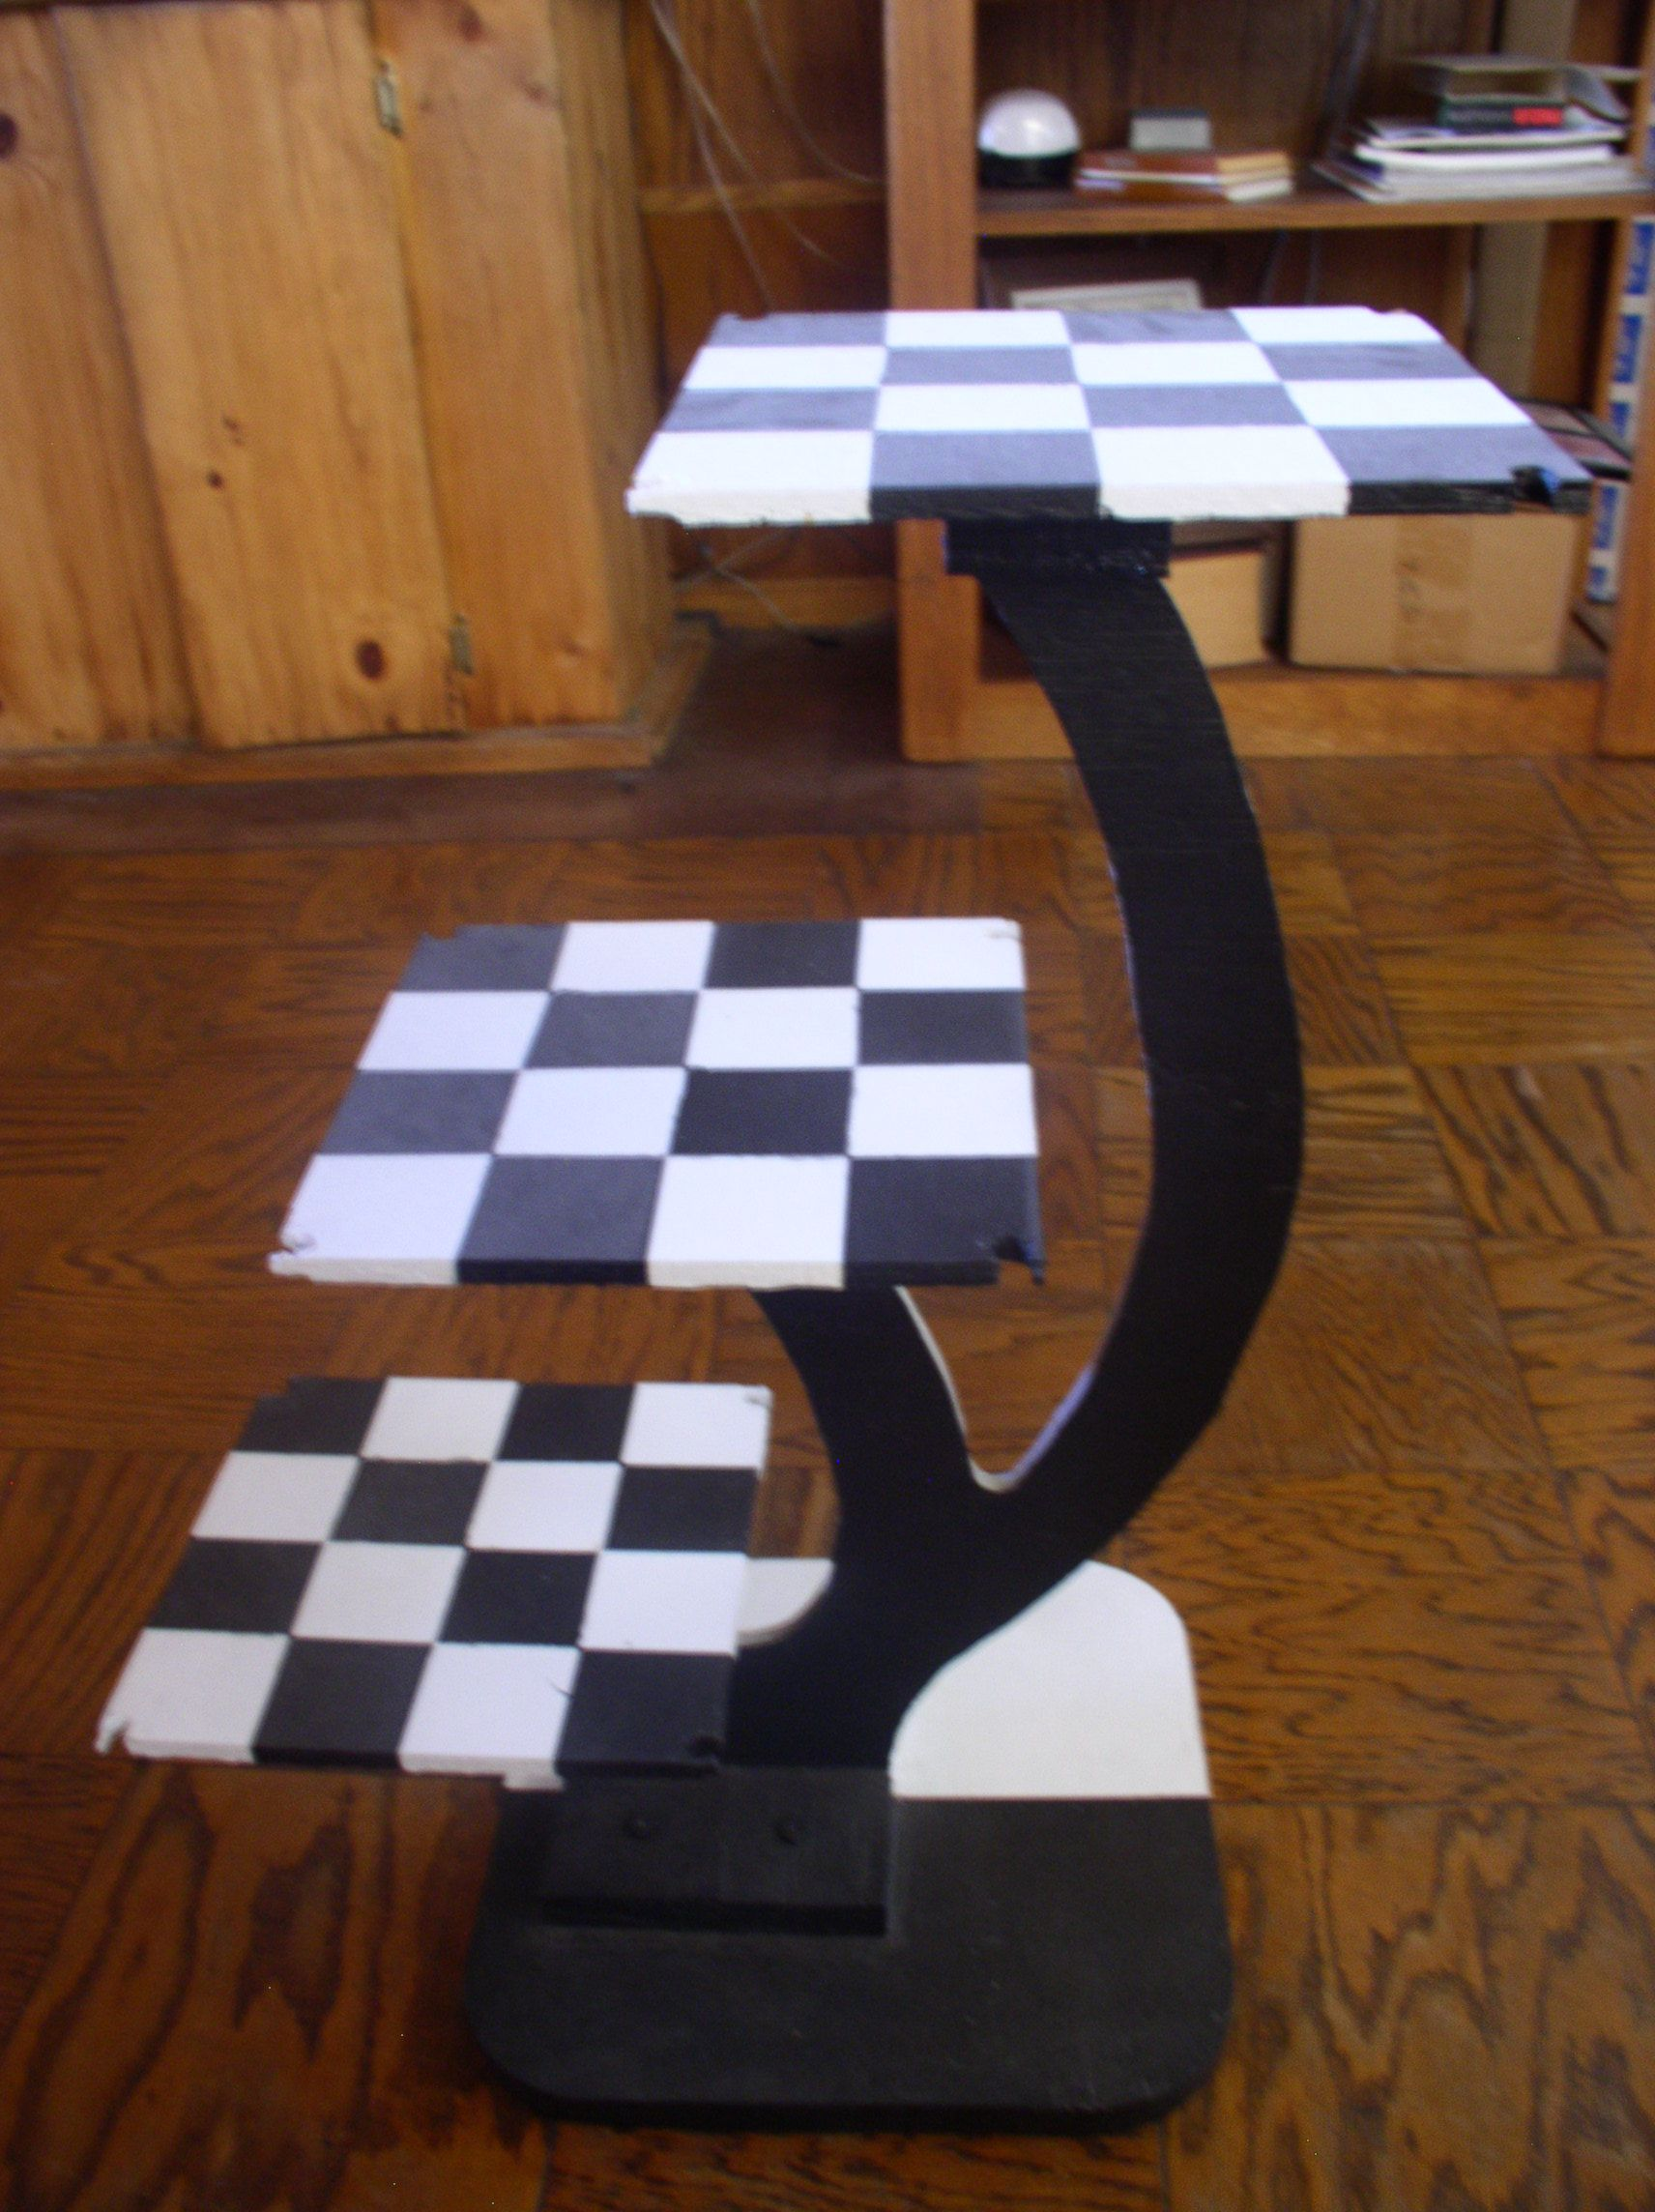 My 3D Chess board I designed and built from star Trek Black side